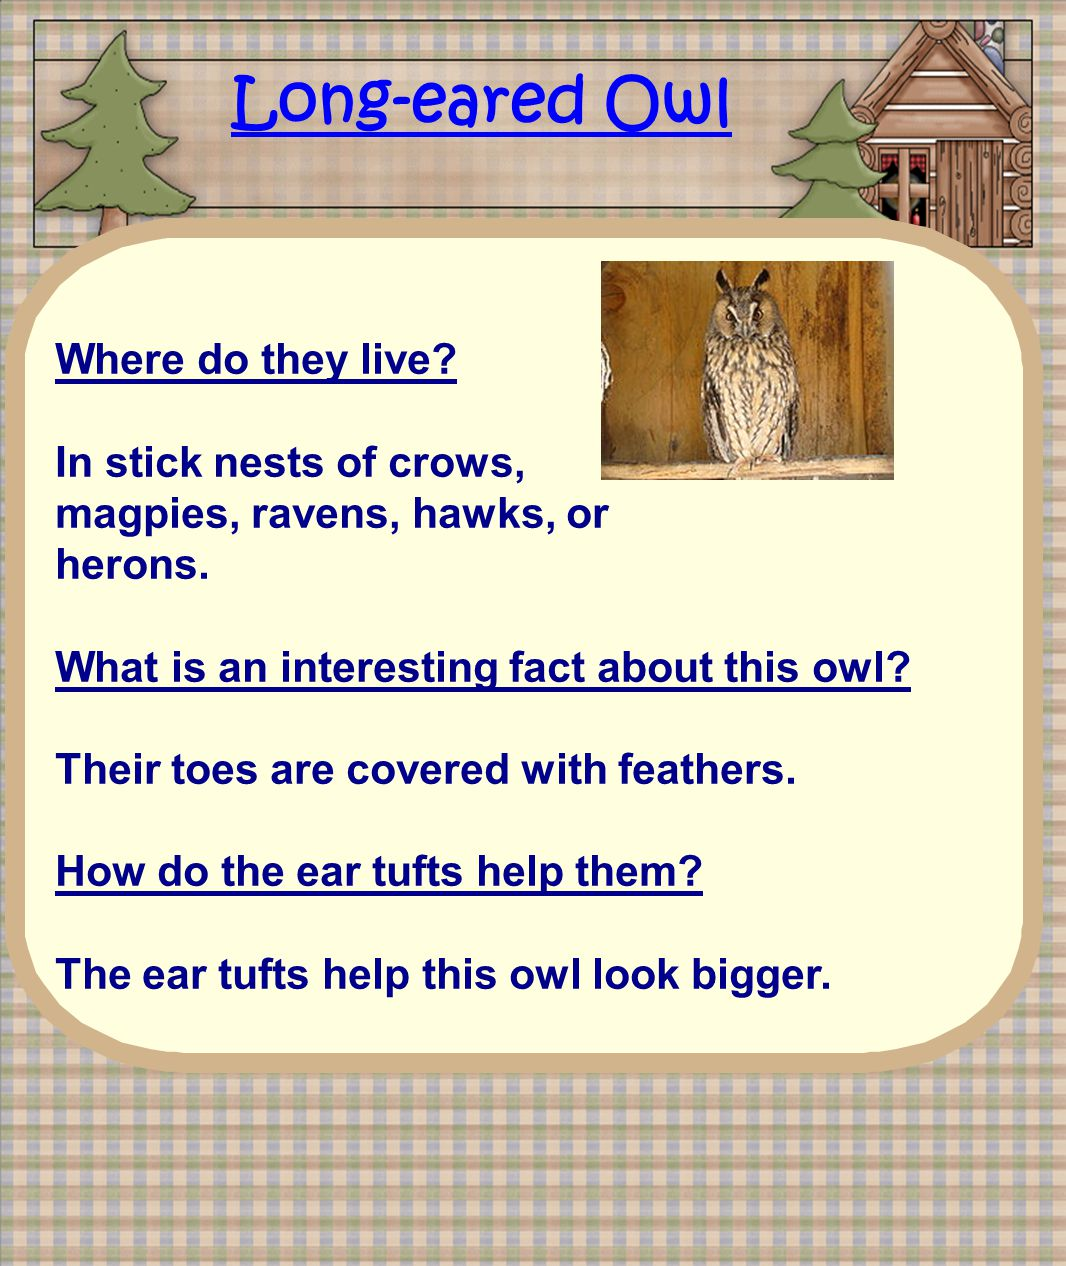 Long-eared Owl Where do they live. In stick nests of crows, magpies, ravens, hawks, or herons.